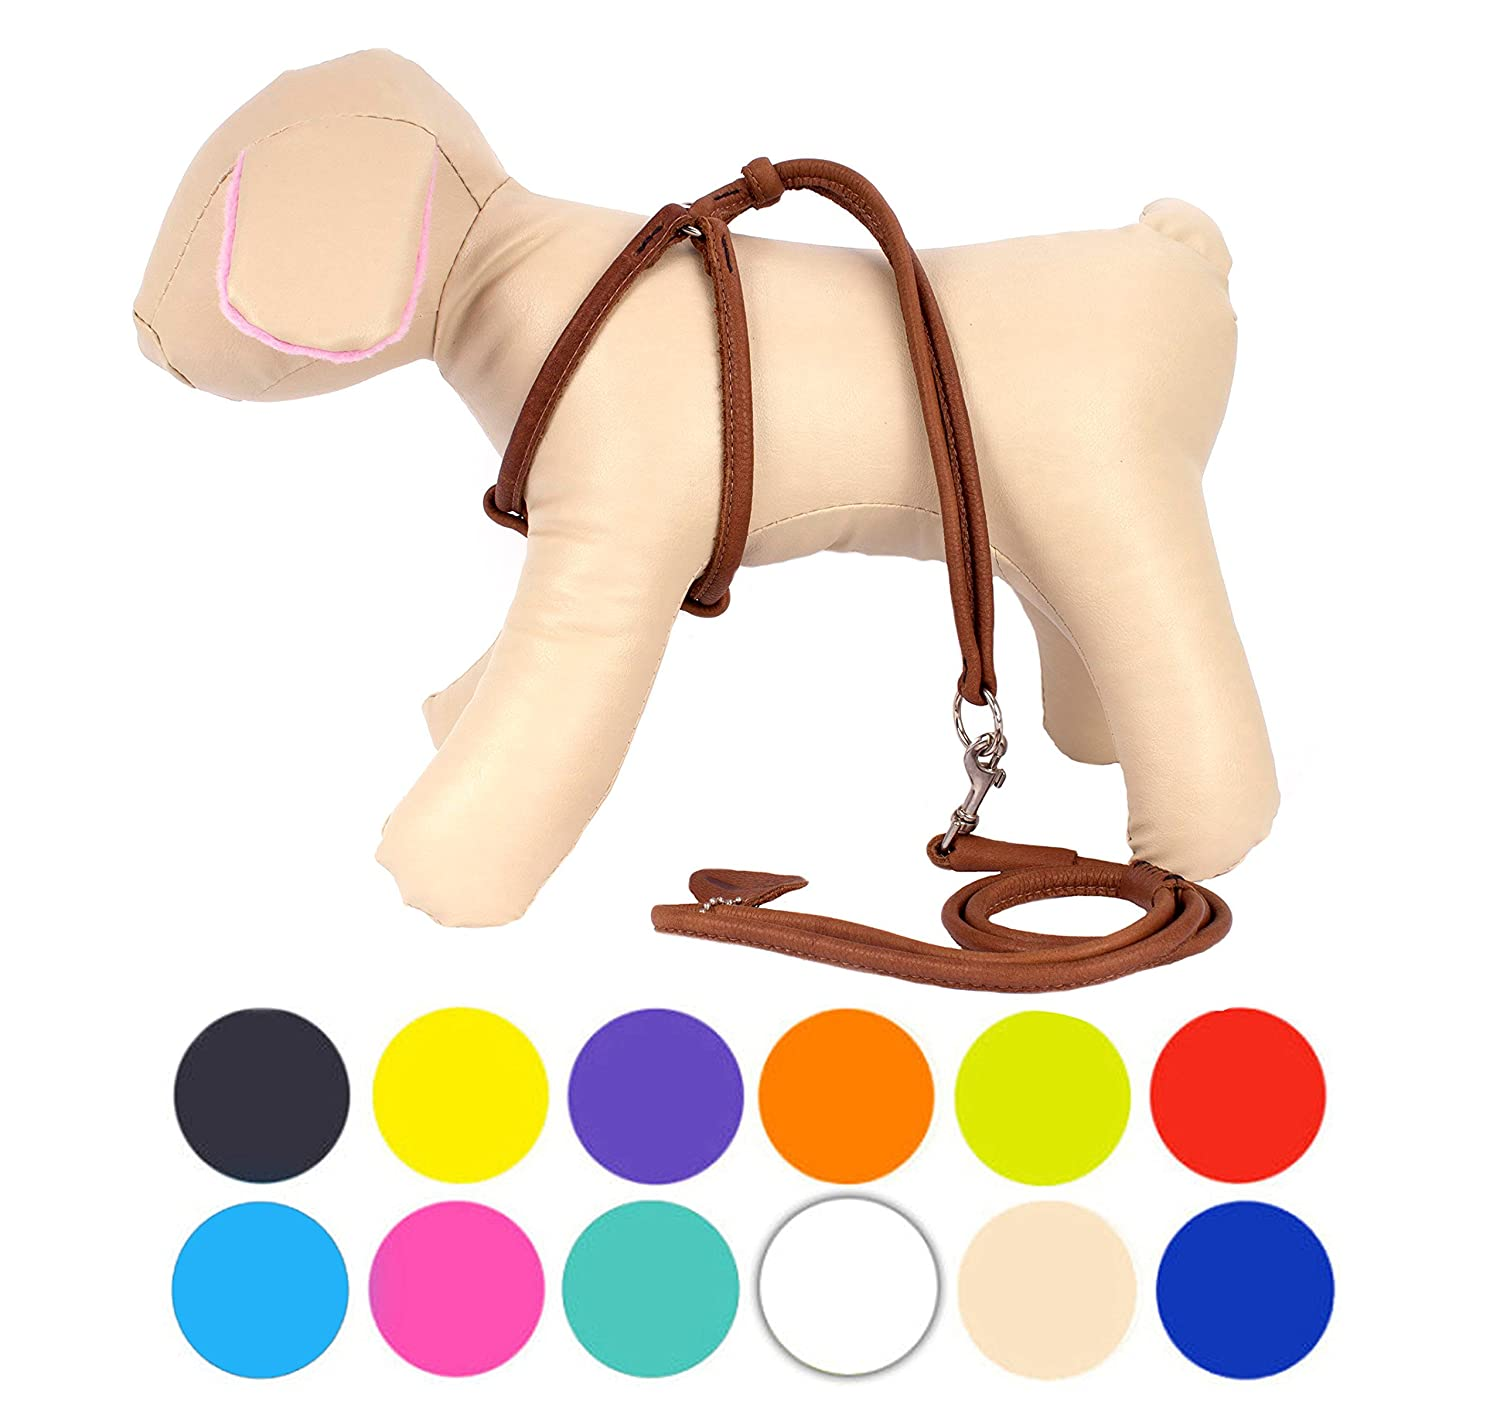 Brown S Brown S CollarDirect Rolled Leather Dog Harness Small Puppy Step-in Leash Set Walking Pink Red White bluee Green Black Purple Beige Brown Yellow (Brown, S)